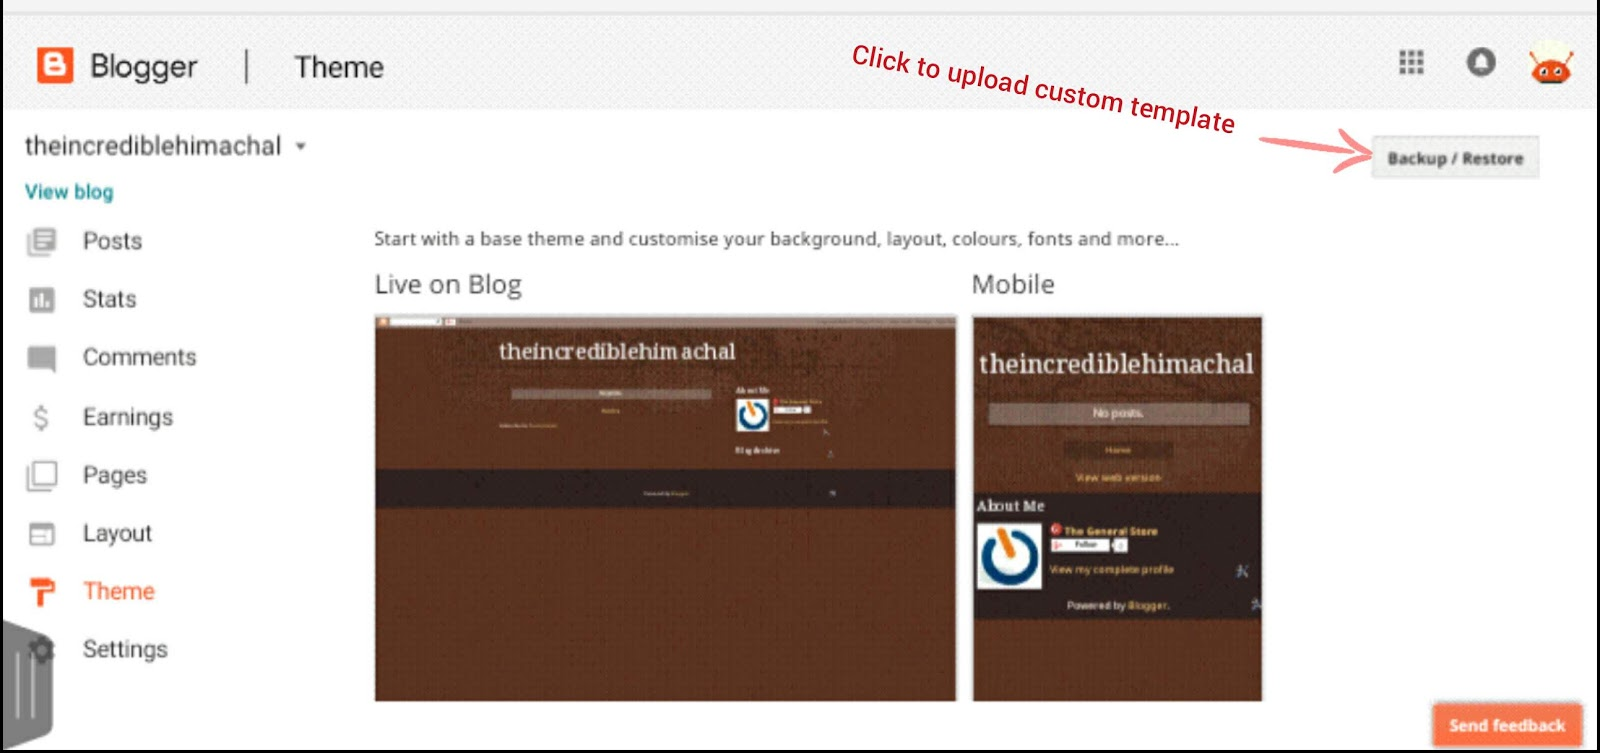 How To Download And Upload A Custom Template In Blogger Blog